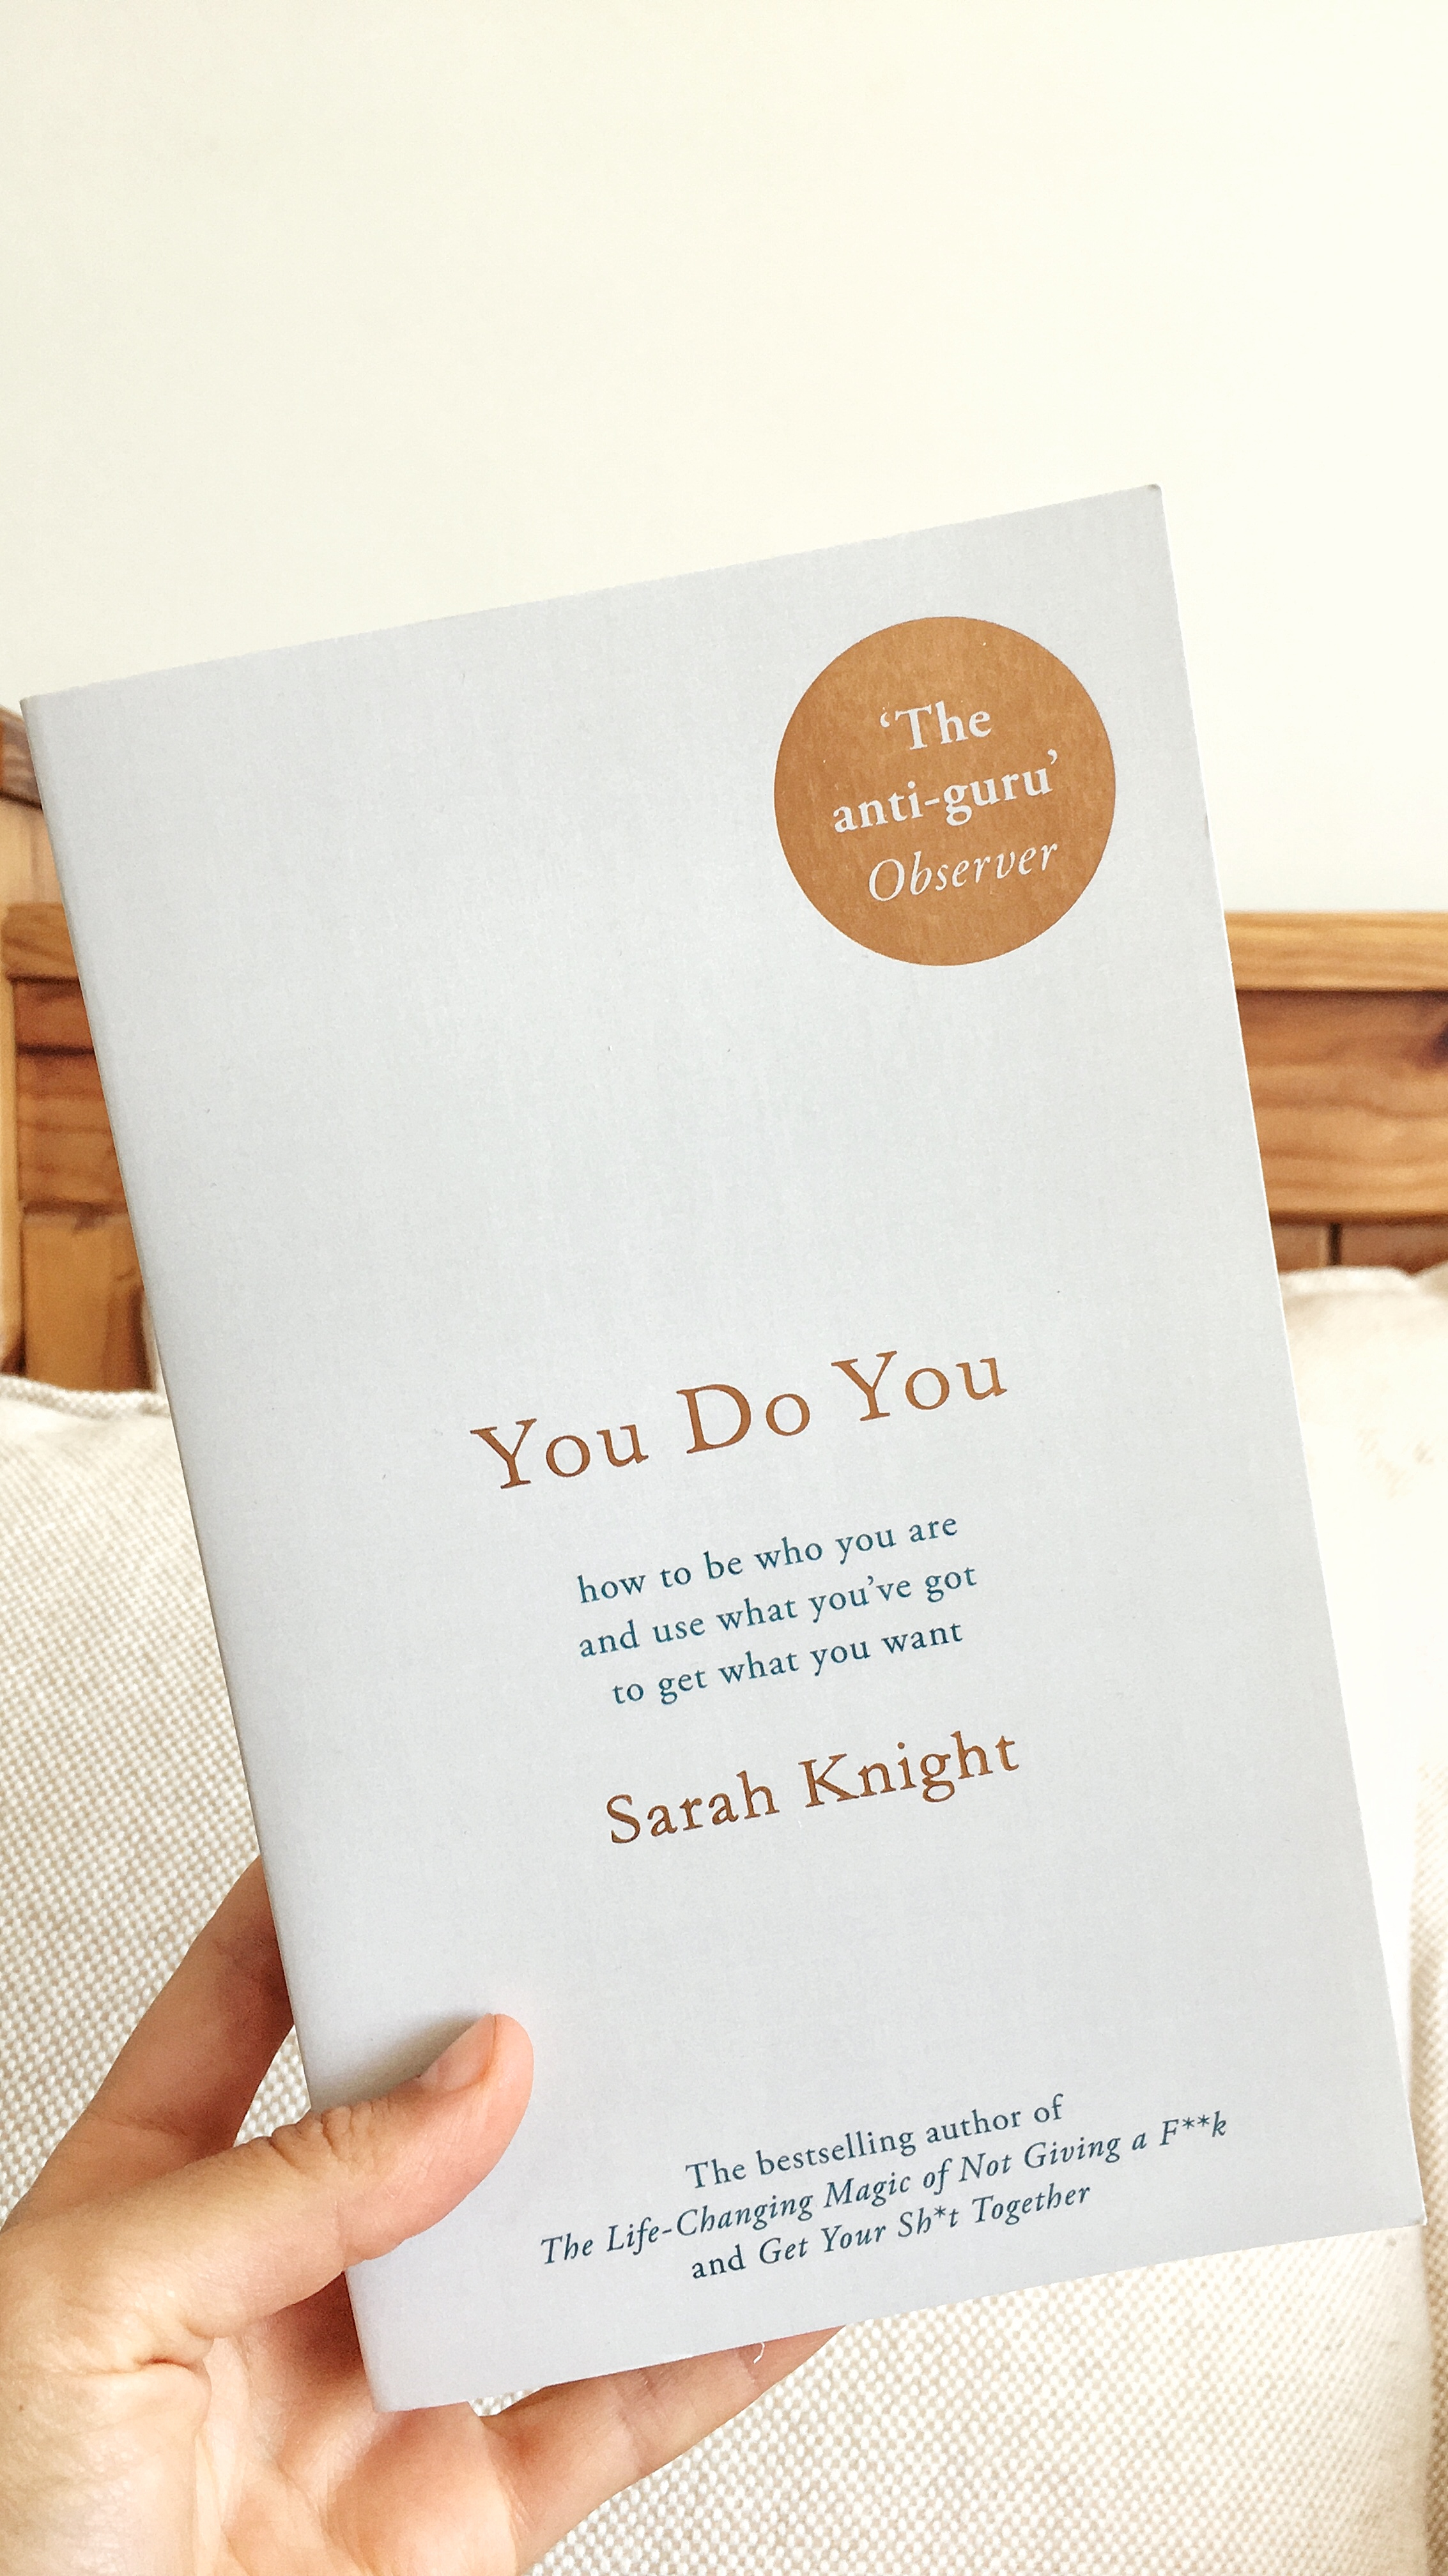 - Finished reading You Do You by Sarah Knight and it proved to be exactly what I needed to kick off 2019.